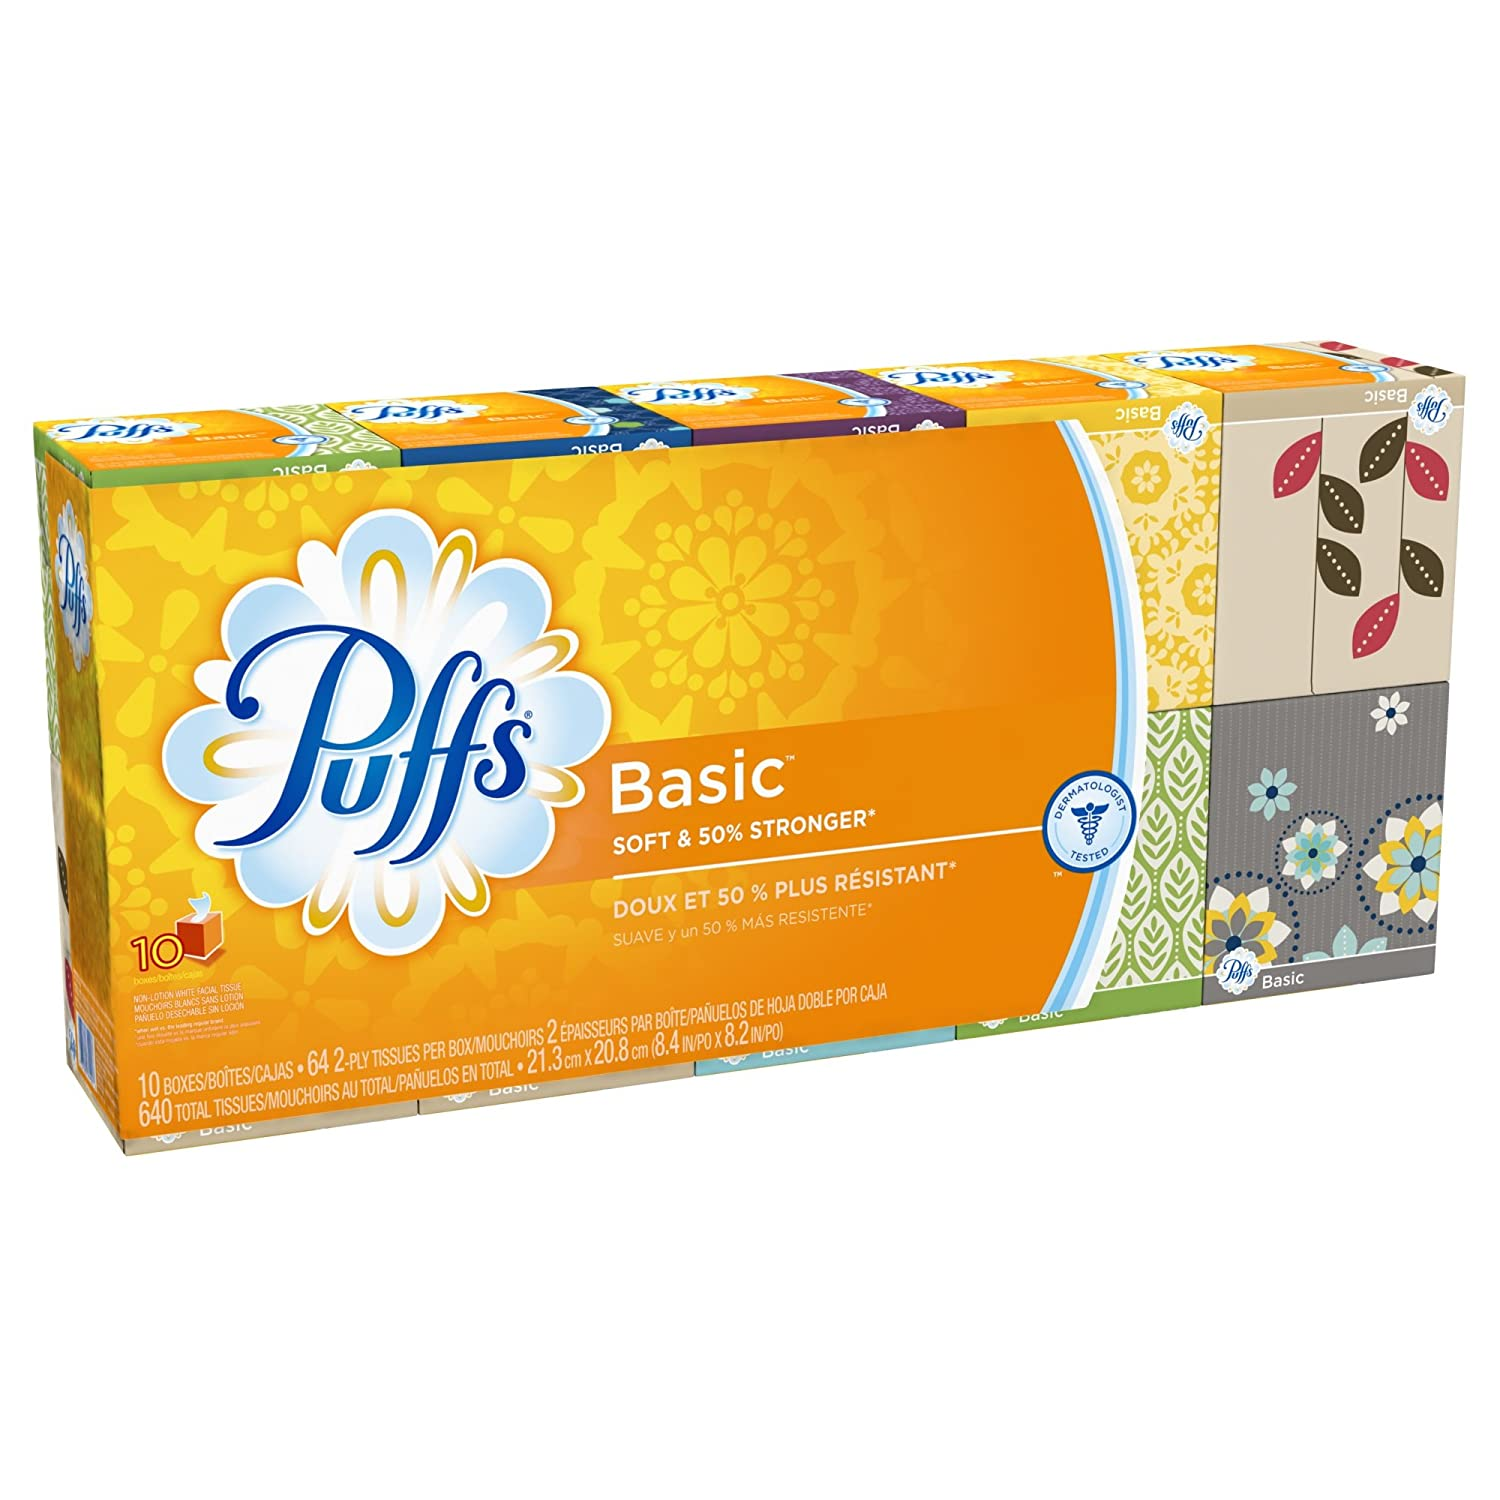 Amazon.com: Puffs Plus Lotion Facial Tissues, 3 Family Boxes, 124 Tissues Per Box: Health & Personal Care